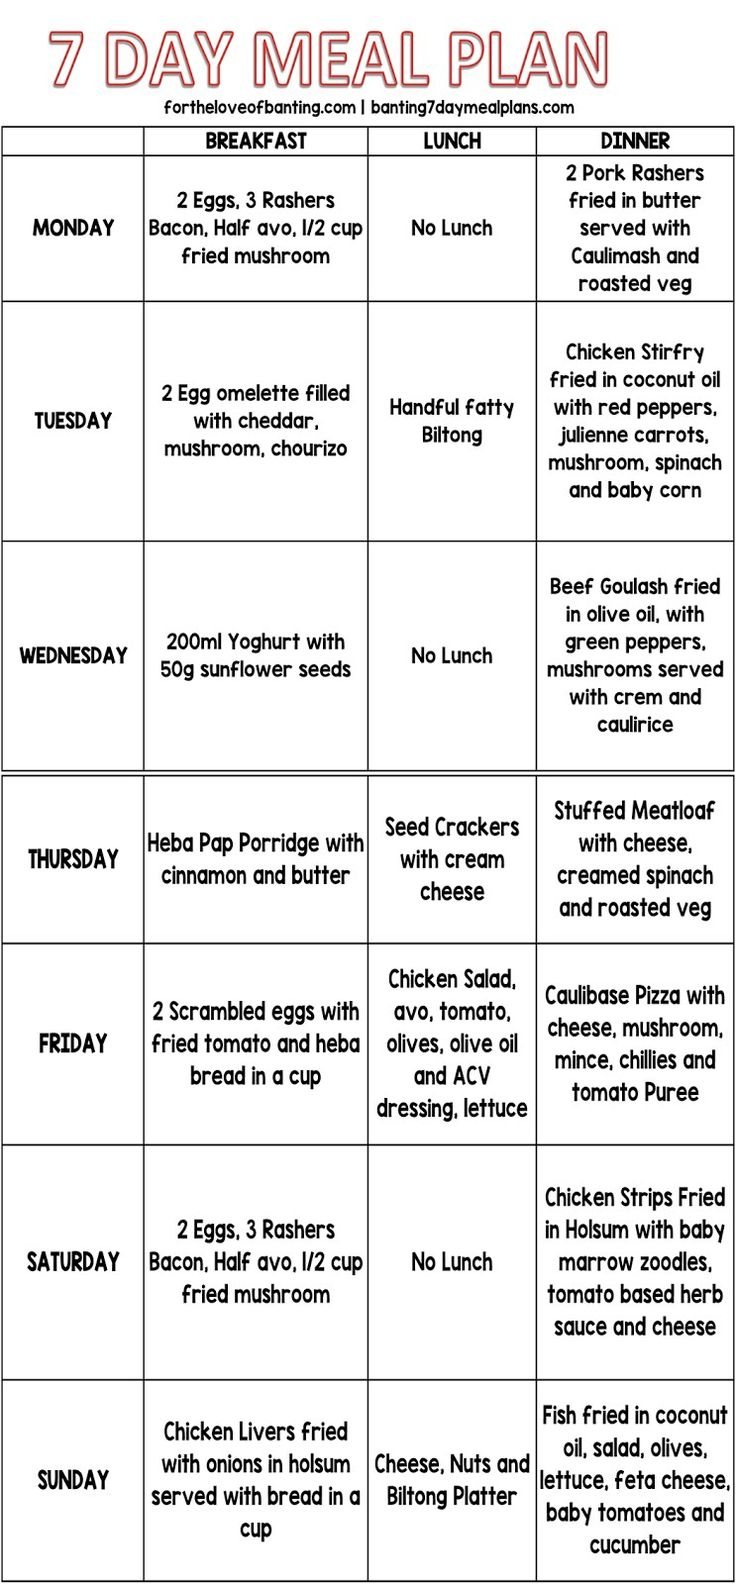 This is a general guideline. Tweak to suit your portions